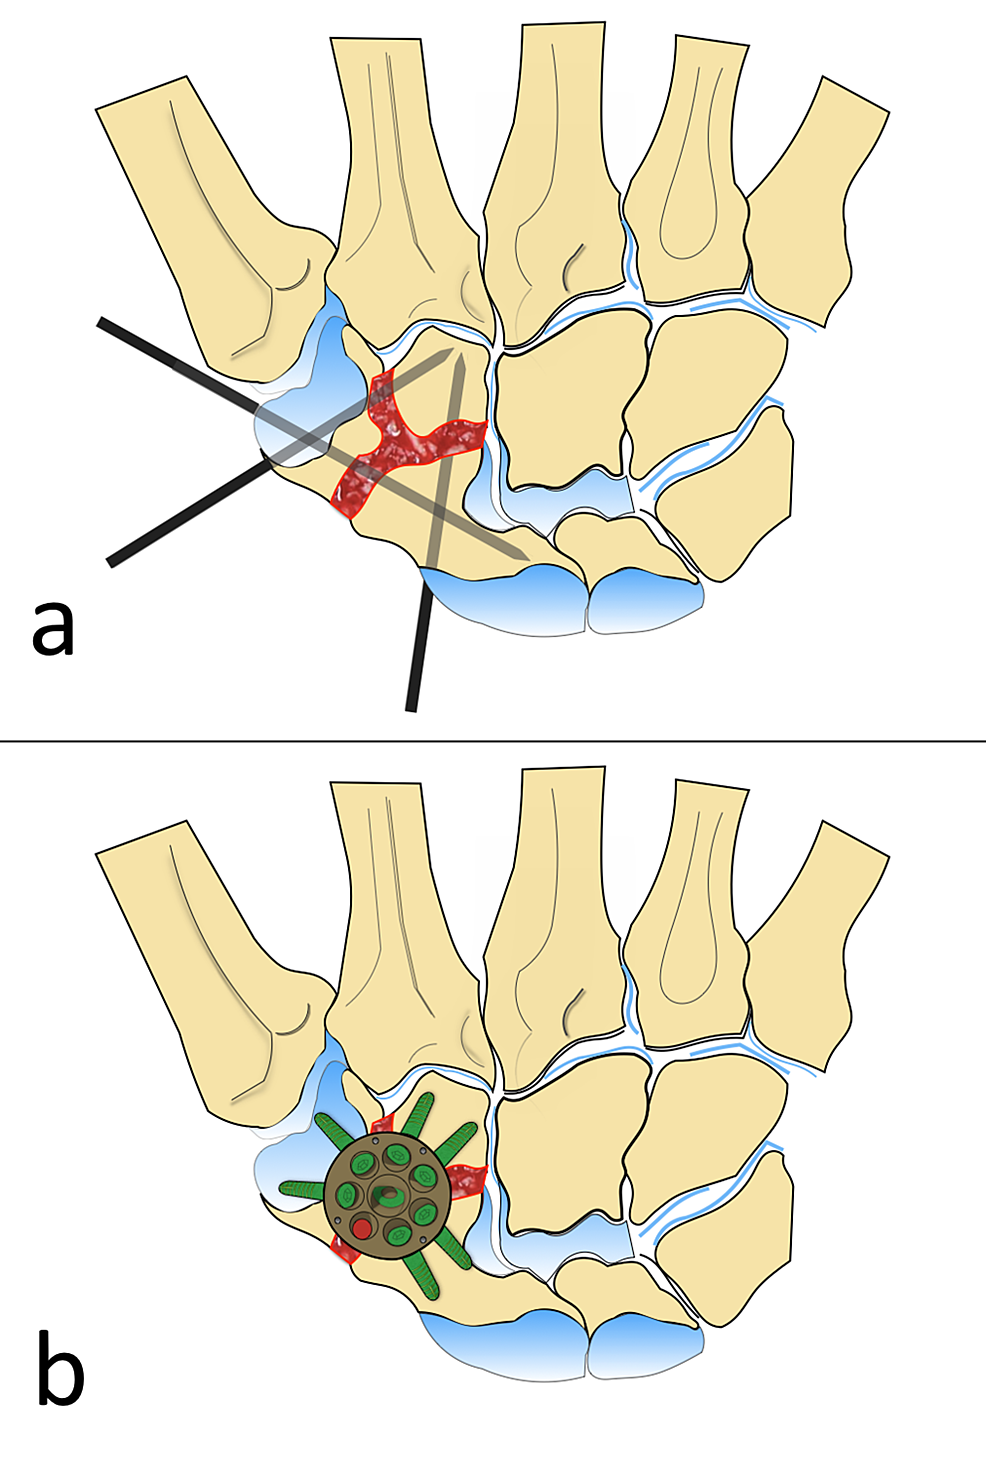 Illustration-Showing-the-Surgical-Technique